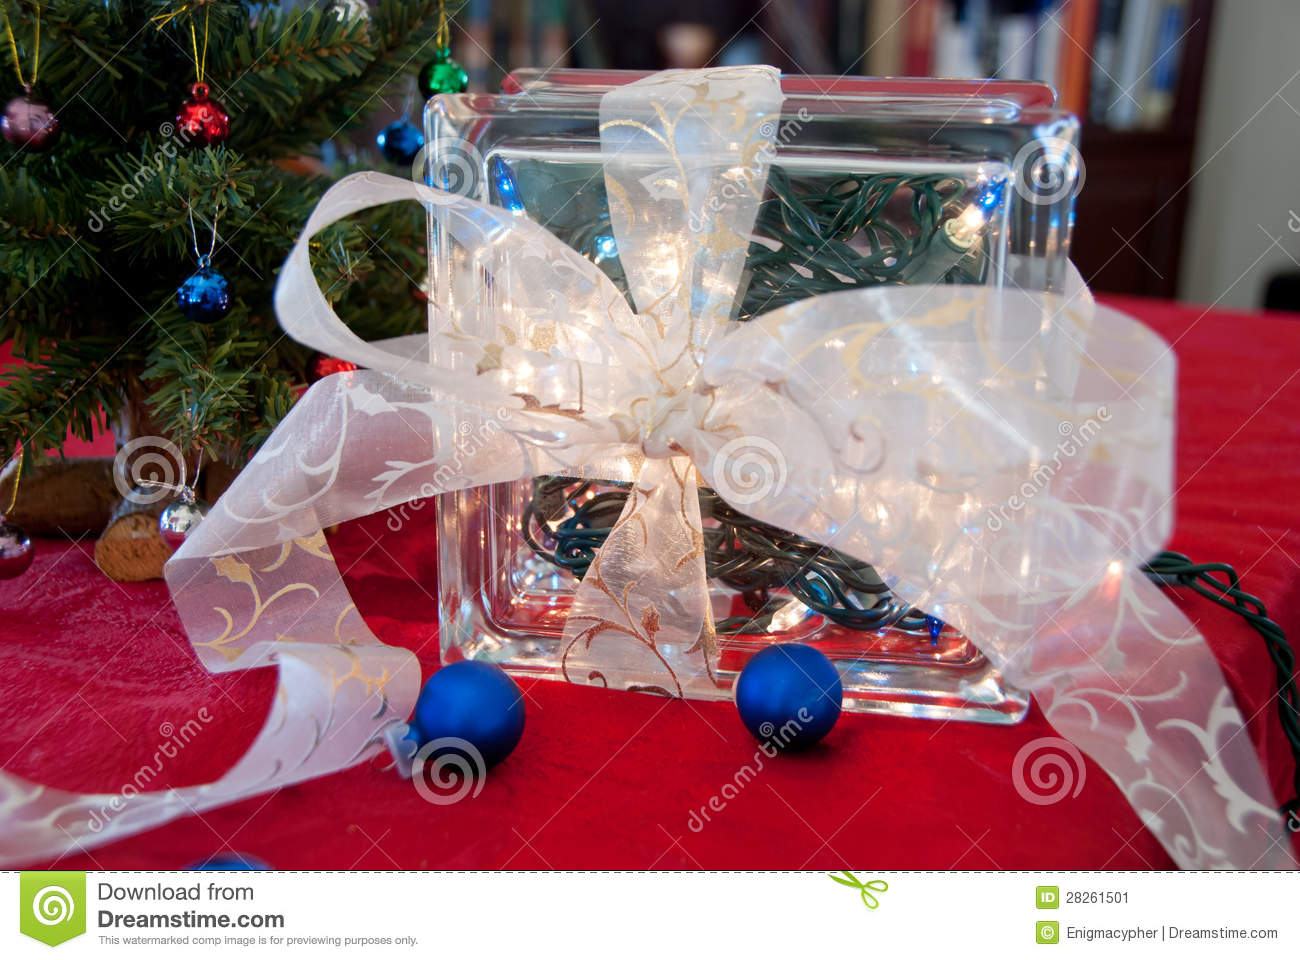 download christmas glass block decoration stock image image of craft hollow 28261501